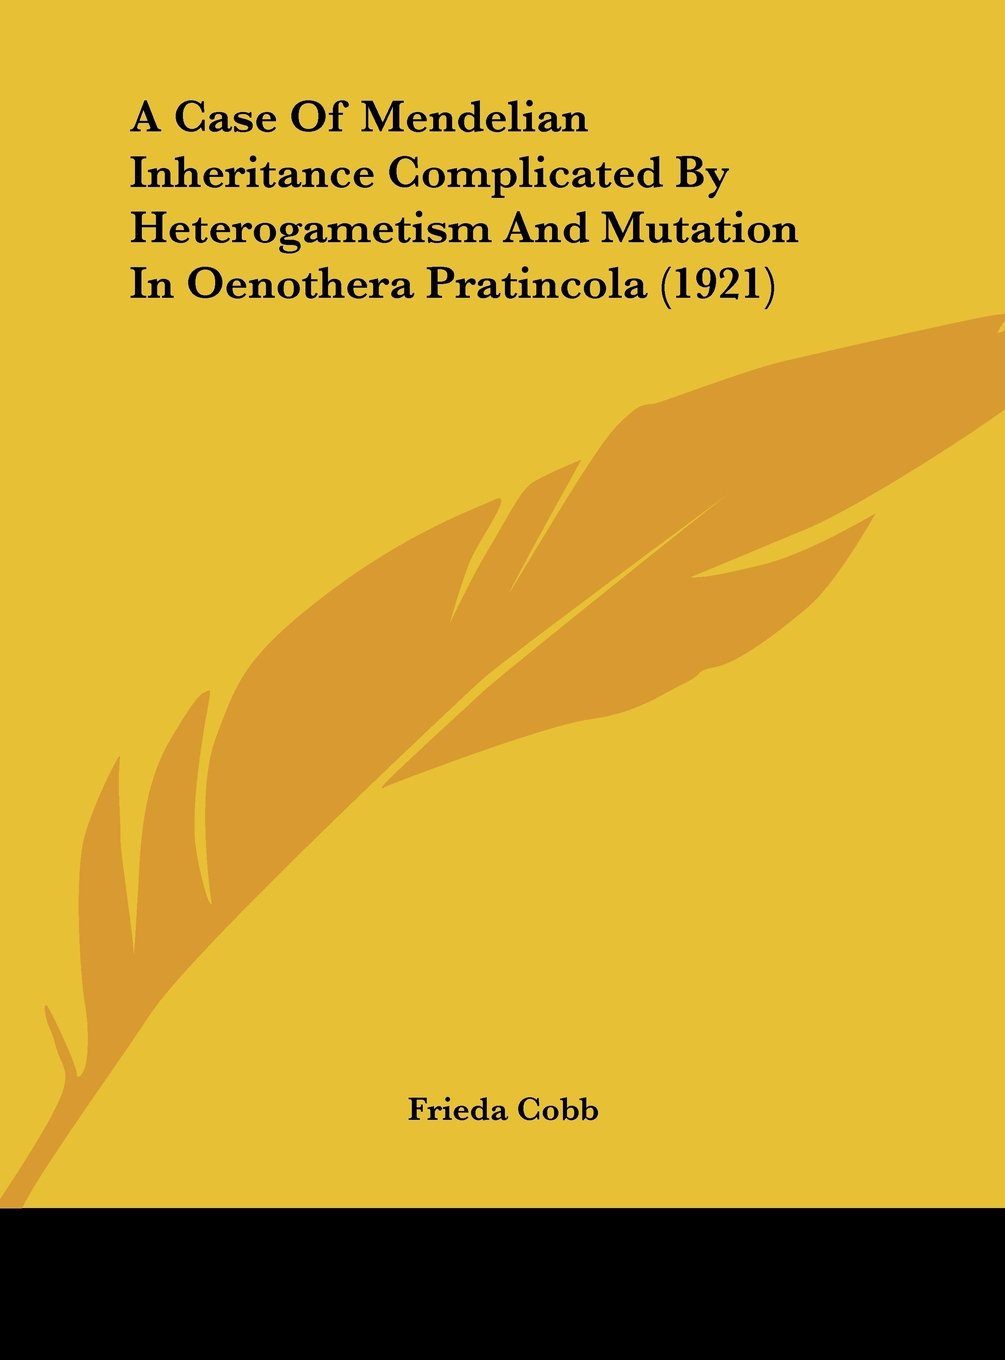 A Case Of Mendelian Inheritance Complicated By Heterogametism And Mutation In Oenothera Pratincola (1921) ebook